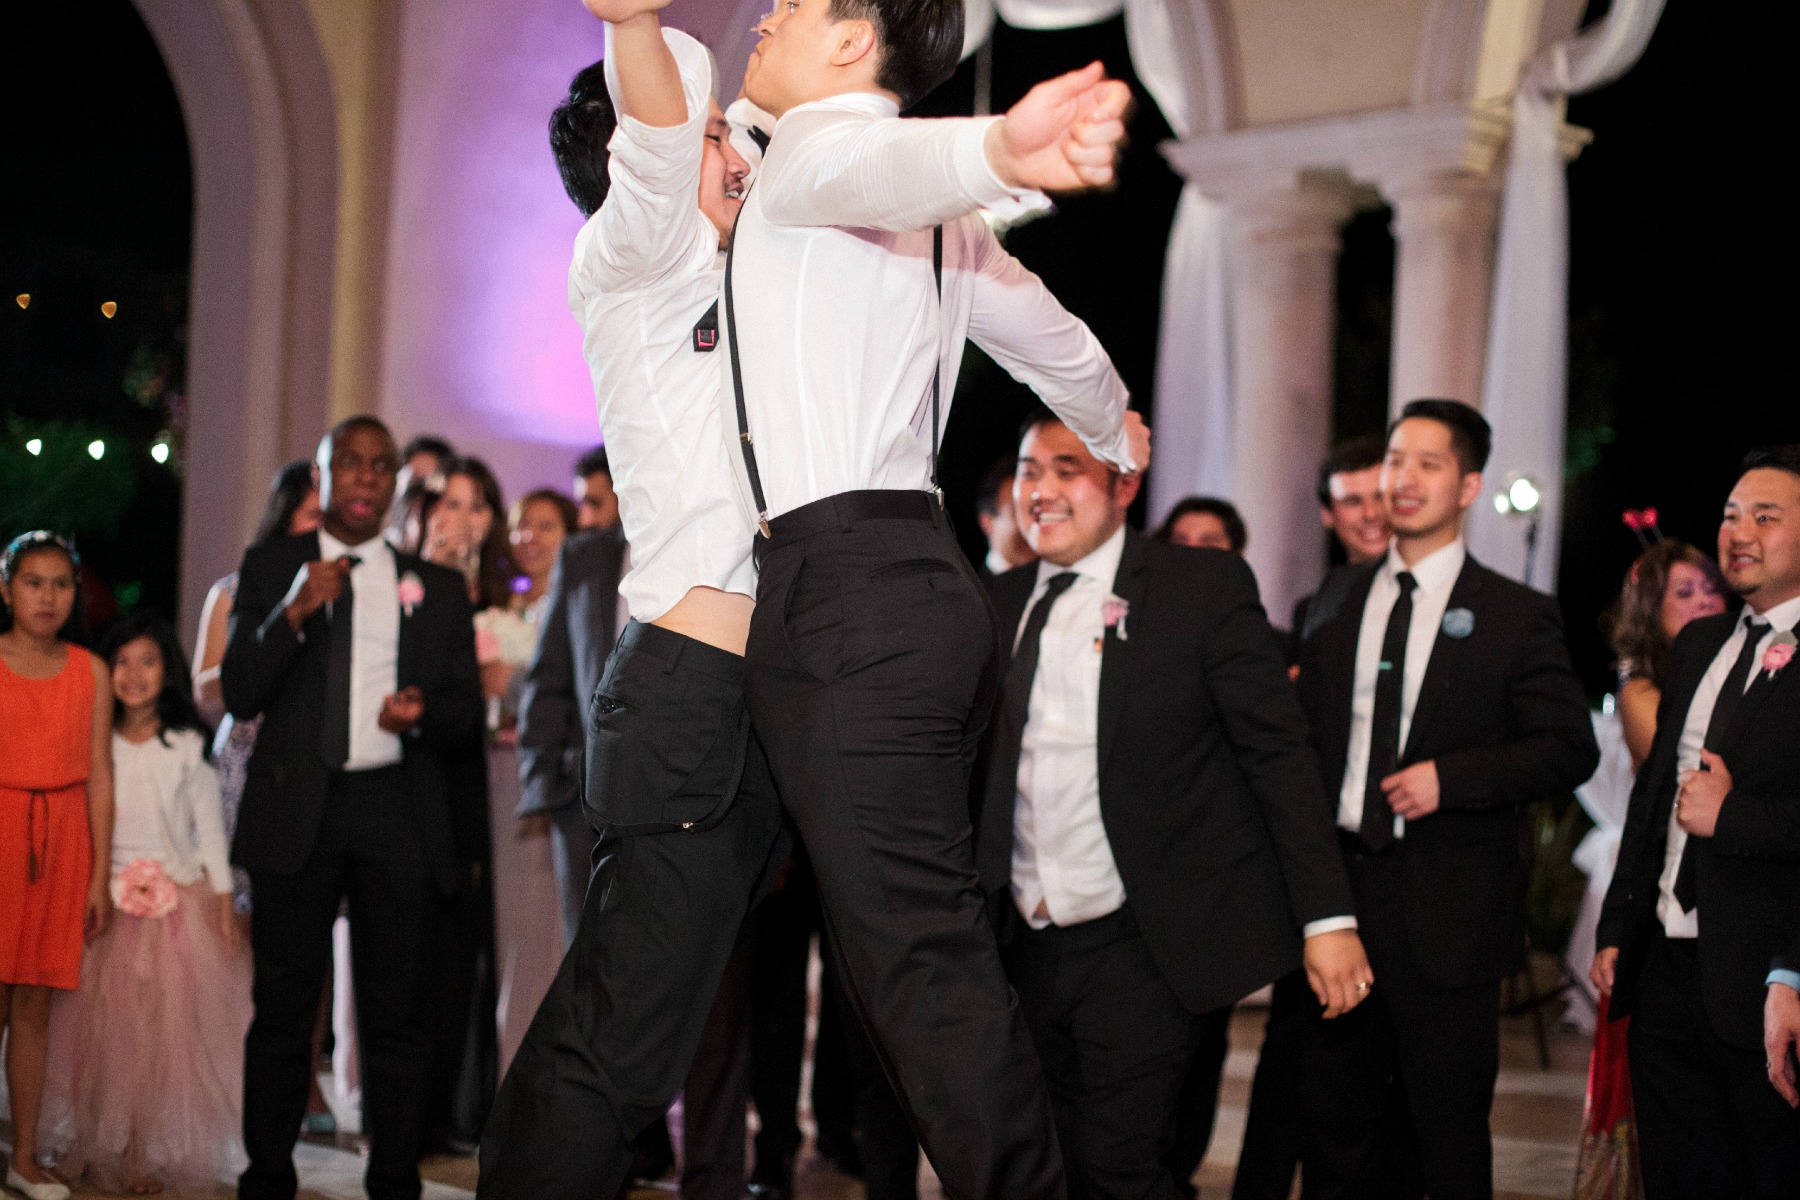 groom and groomsmen jump in the air and do a chest bump on the dance floor